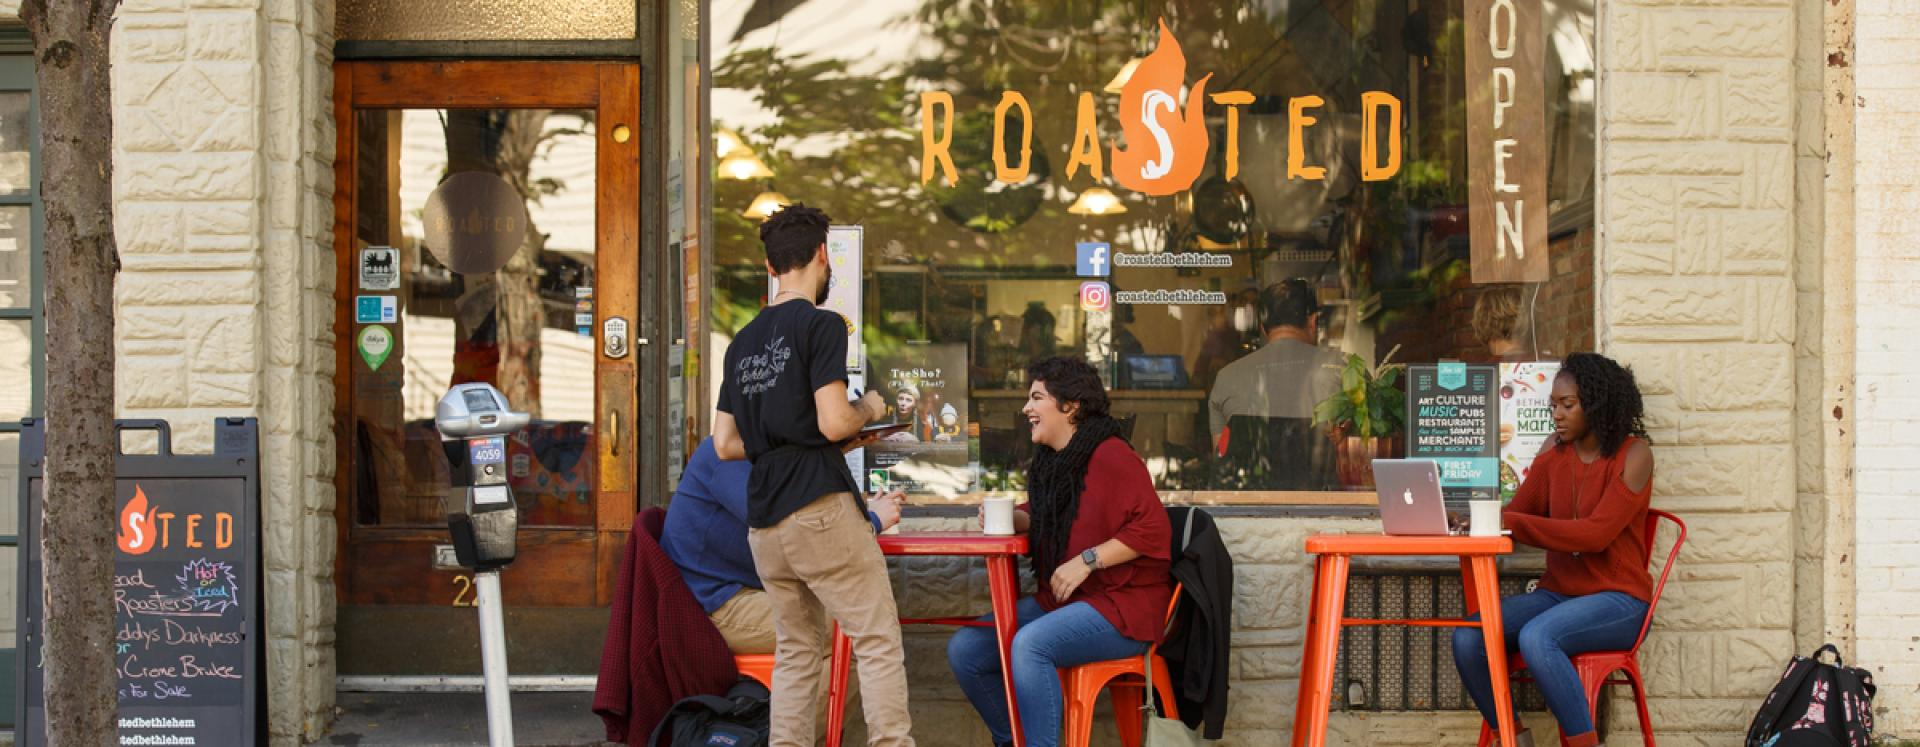 people eating at Roasted